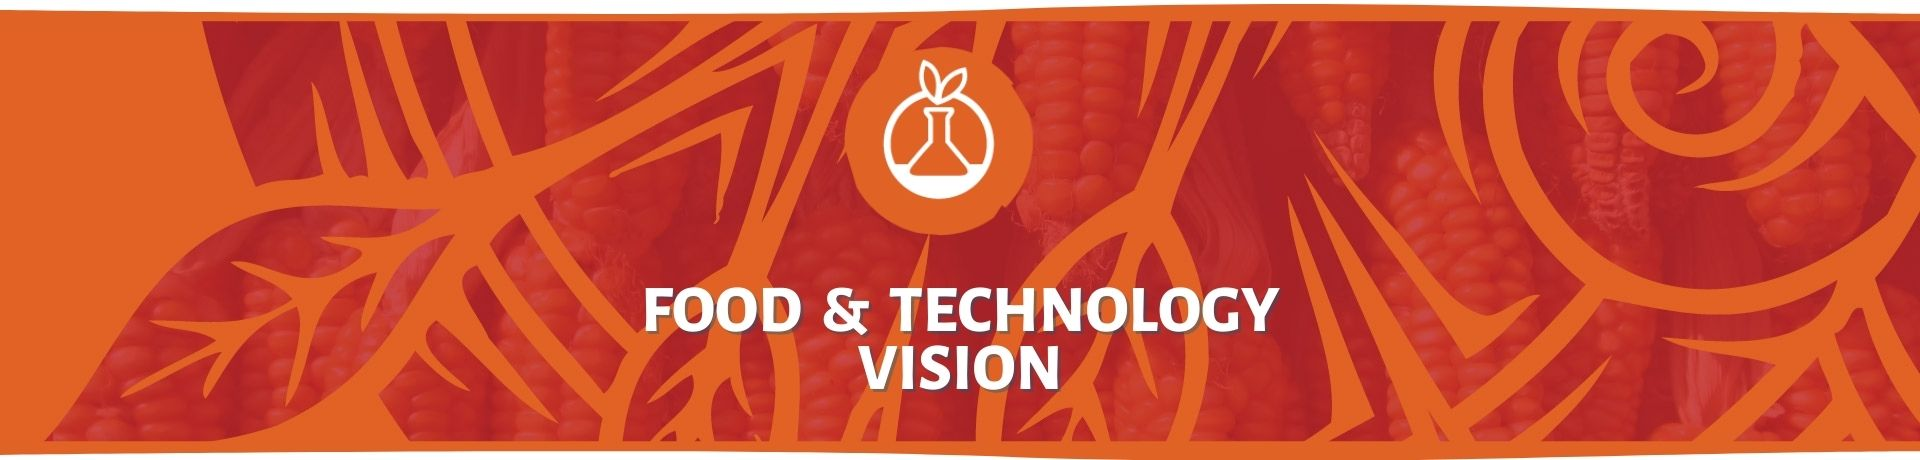 Food & Technology Vision